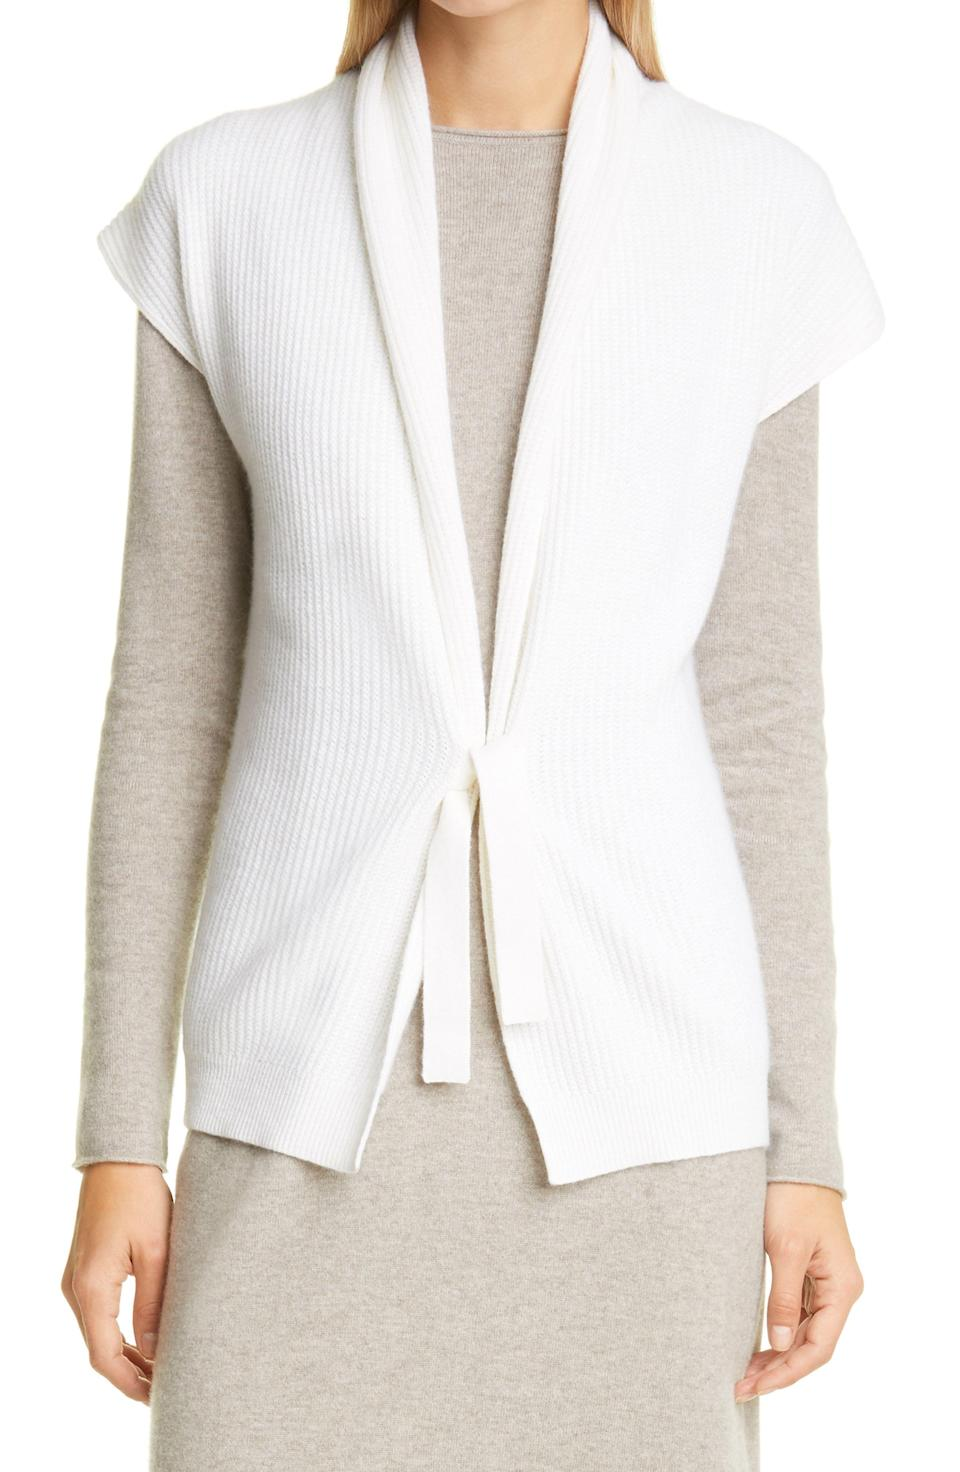 """<p><strong>ALLUDE</strong></p><p>nordstrom.com</p><p><strong>$350.00</strong></p><p><a href=""""https://go.redirectingat.com?id=74968X1596630&url=https%3A%2F%2Fwww.nordstrom.com%2Fs%2Fallude-rib-tie-front-sweater-vest%2F5735217&sref=https%3A%2F%2Fwww.townandcountrymag.com%2Fstyle%2Ffashion-trends%2Fg34521550%2Fbest-sweater-vests%2F"""" rel=""""nofollow noopener"""" target=""""_blank"""" data-ylk=""""slk:Shop Now"""" class=""""link rapid-noclick-resp"""">Shop Now</a></p>"""